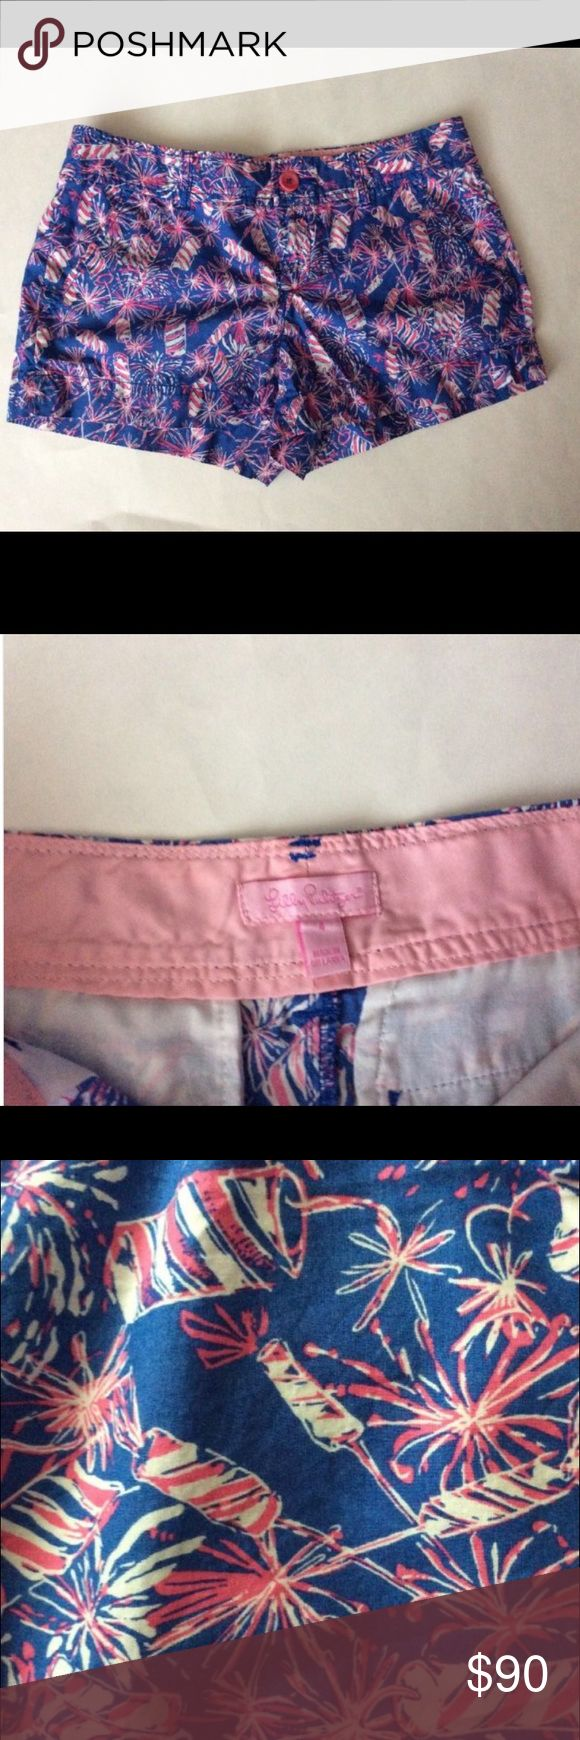 Lilly Pulitzer Cherry Bomb Firework Walsh Shorts 4 Rare and hard to find Cherry Bomb print by Lilly Pulitzer. Walsh style shorts. Holy grail print!! Absolutely no tears or loose threads, fabric is in beautiful condition, no fading!!  Measurements: Size: 4 Across waist: 15in Outerseam: 10in Inseam: 3in Lilly Pulitzer Shorts